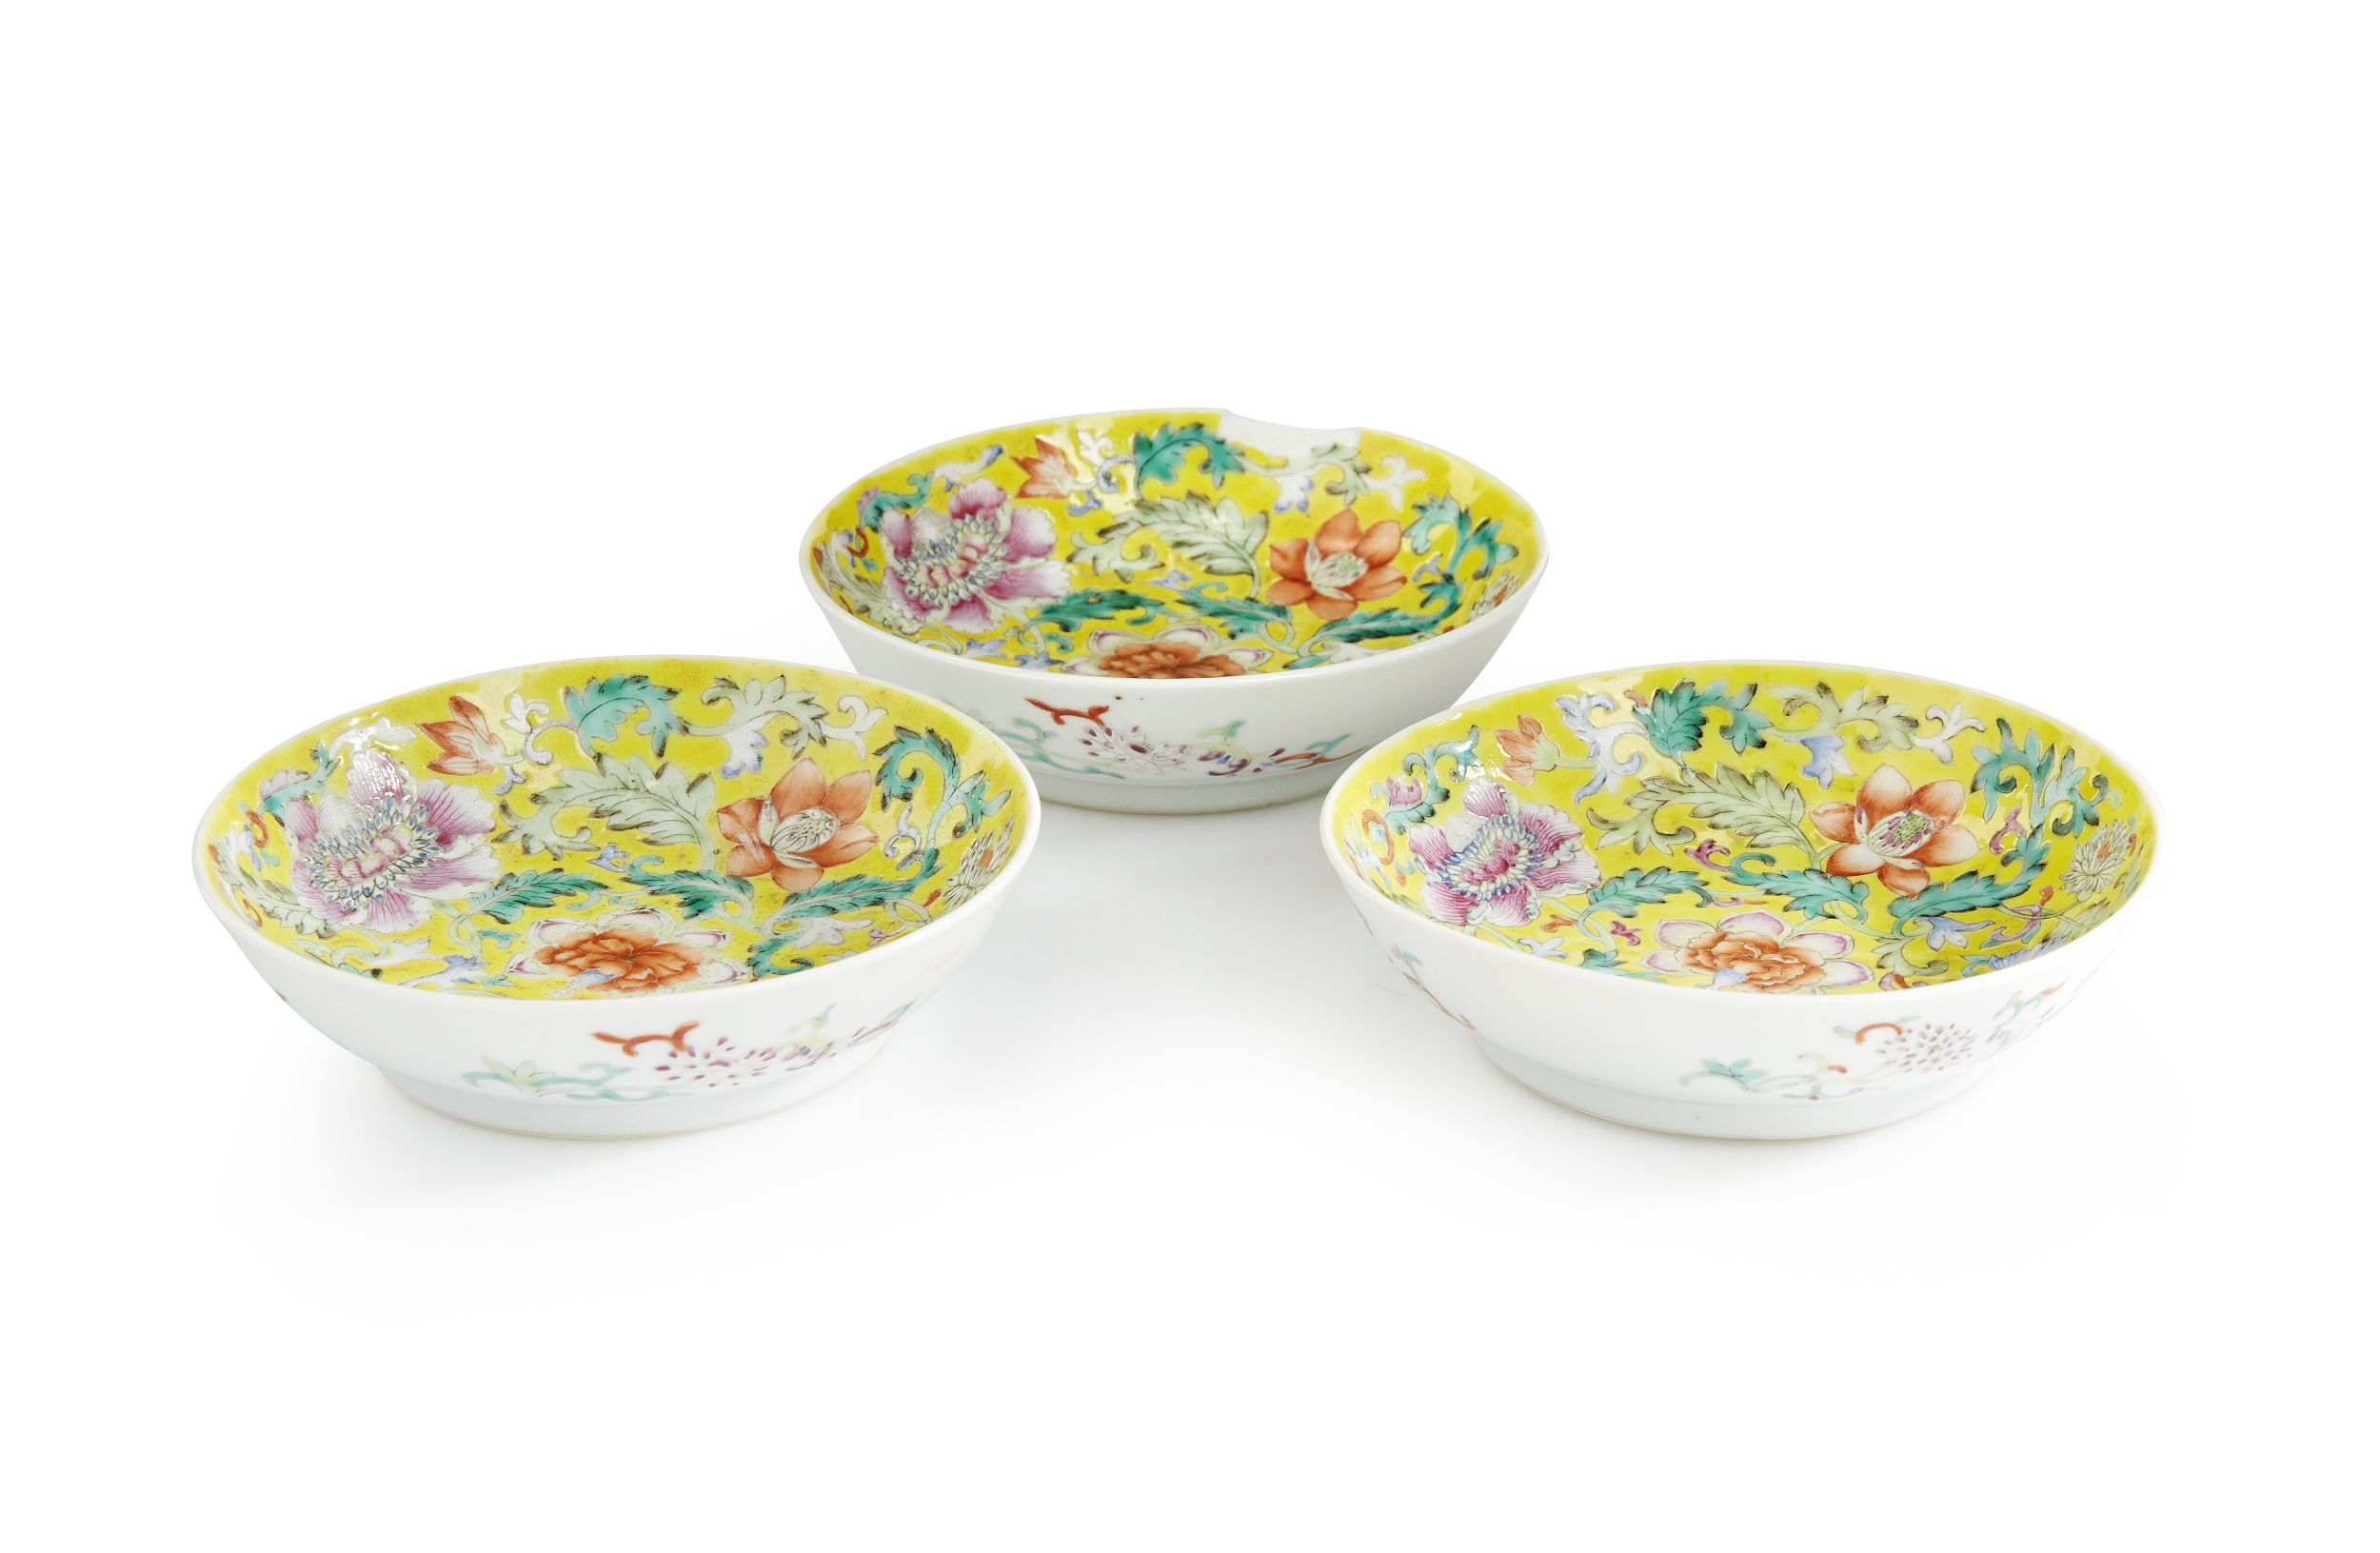 A Set of Three Famille Rose Saucer Dishes